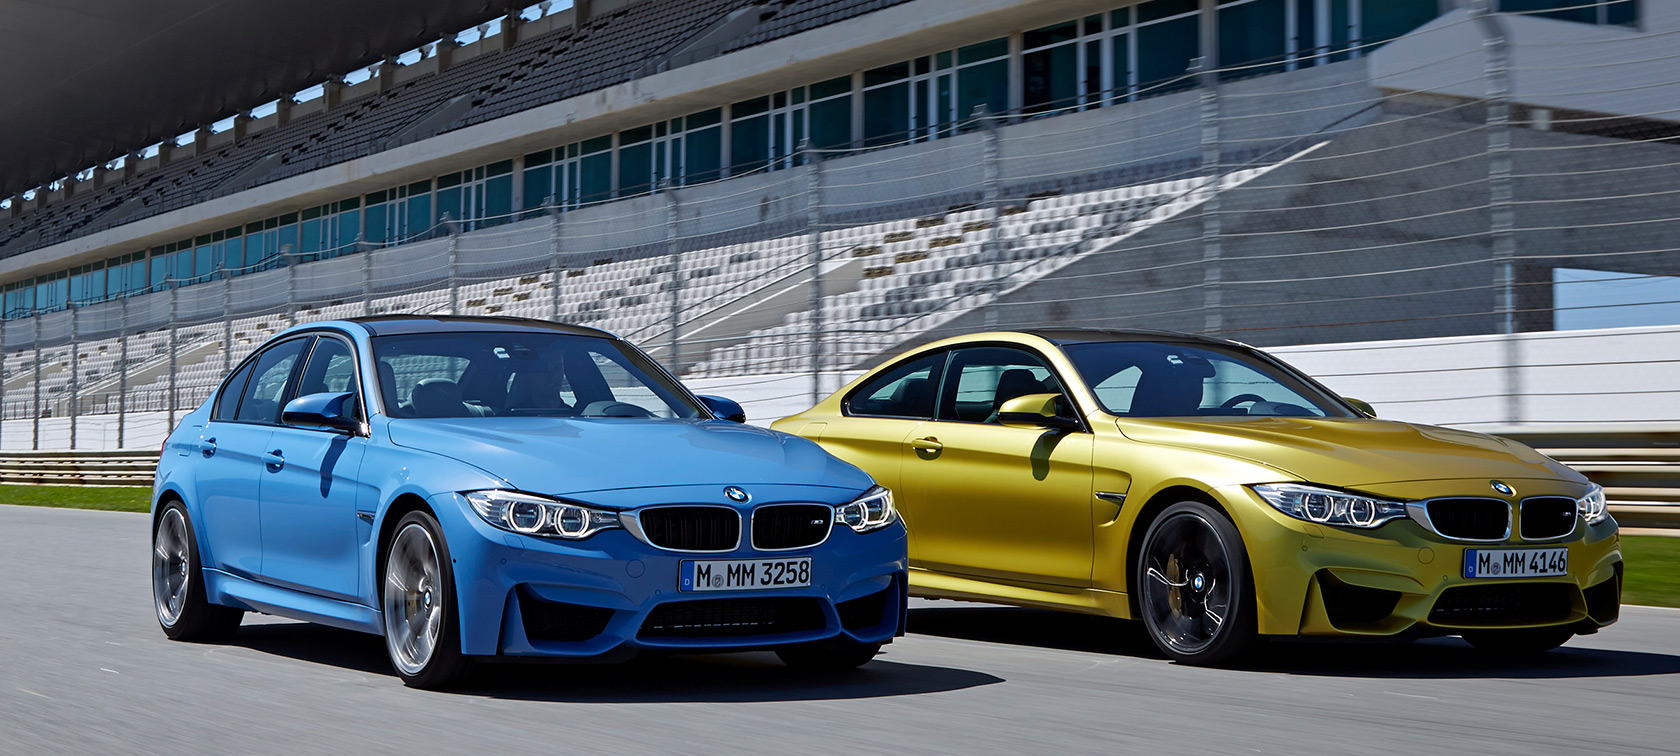 the suspension of the bmw m3 and bmw m4.